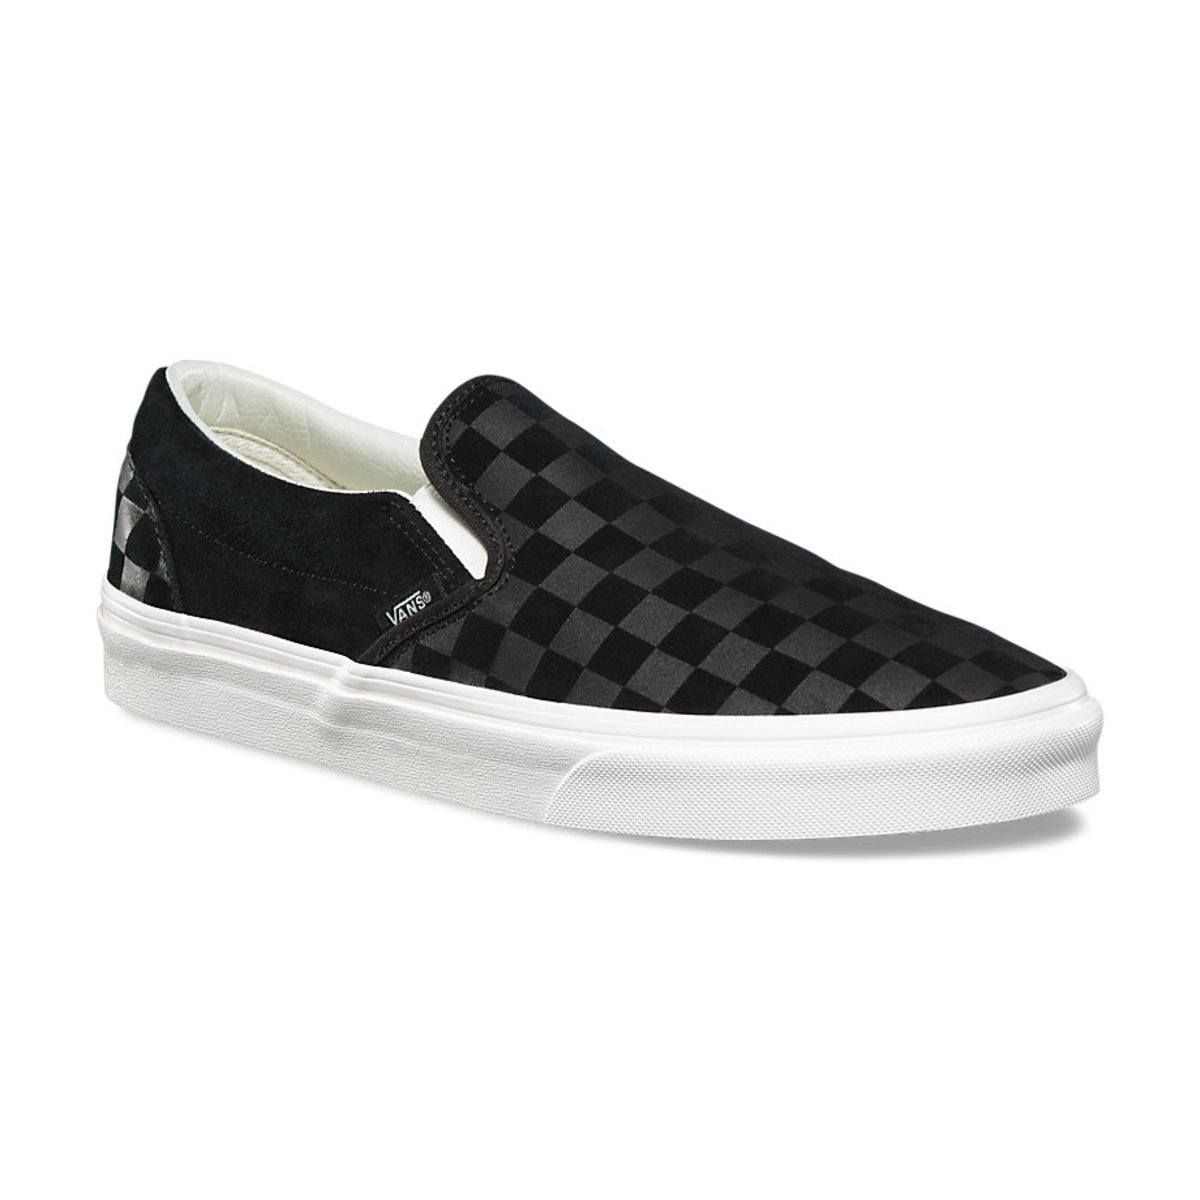 boty VANS - UA CLASSIC SLIP-ON (CHECKER EM) - VA38F7QCF